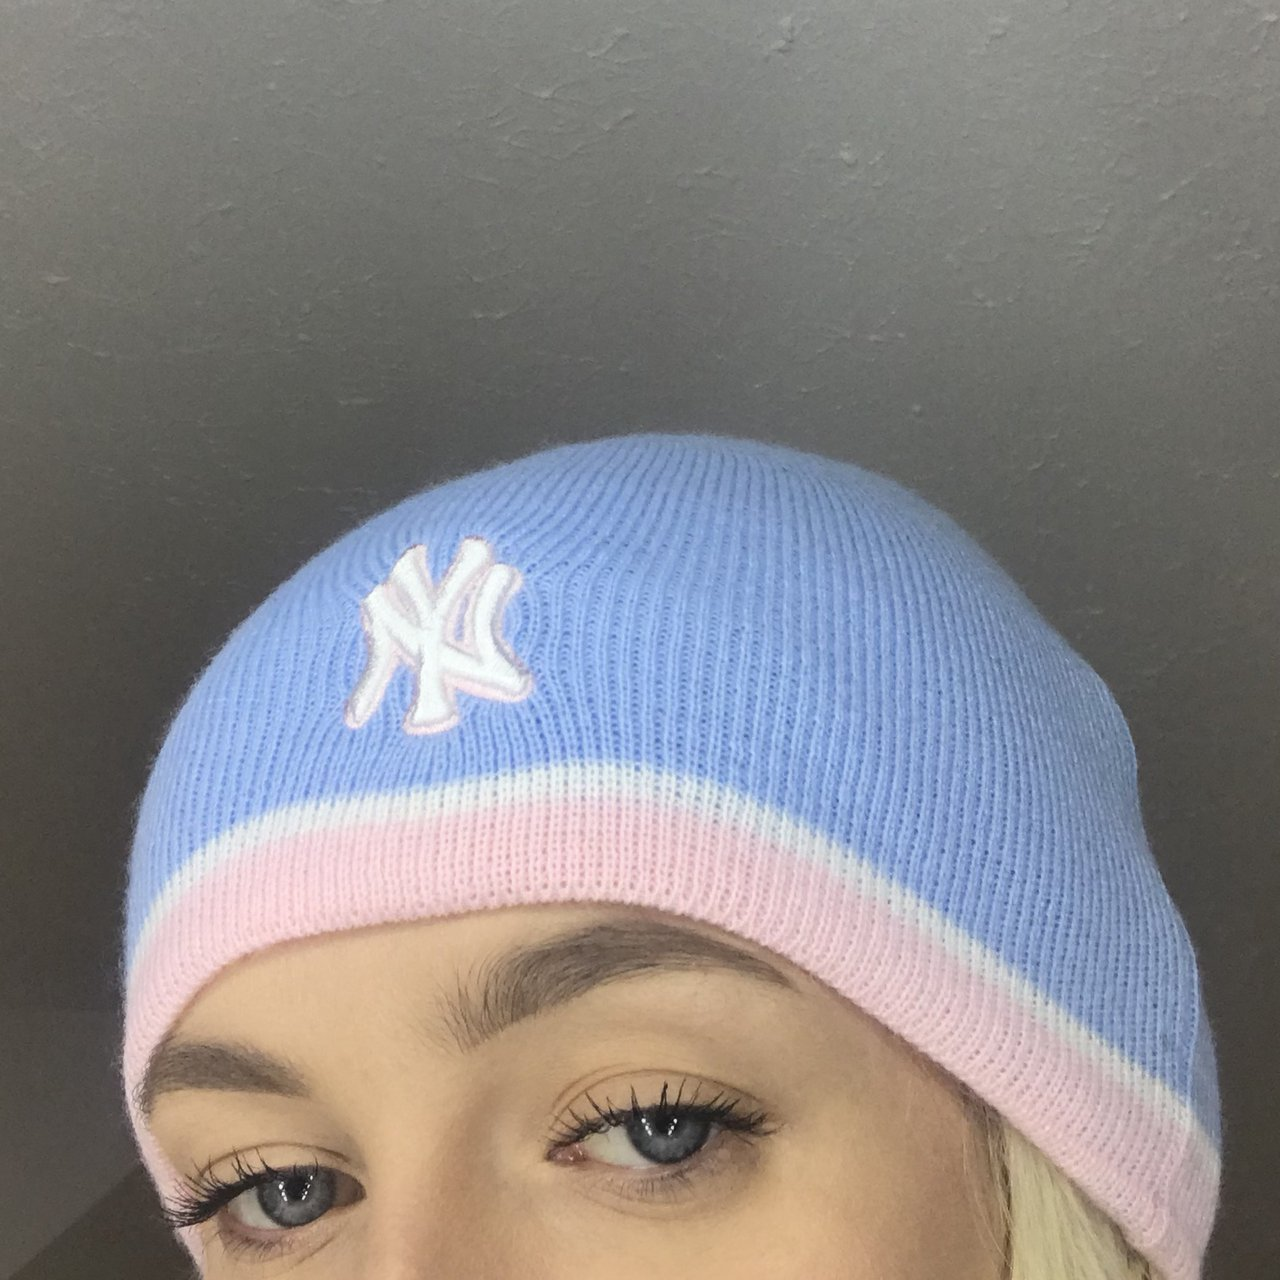 c7c07a728b4b8a OG Y2K 2000s vintage NY Yankees baby pink white and blue hat - Depop